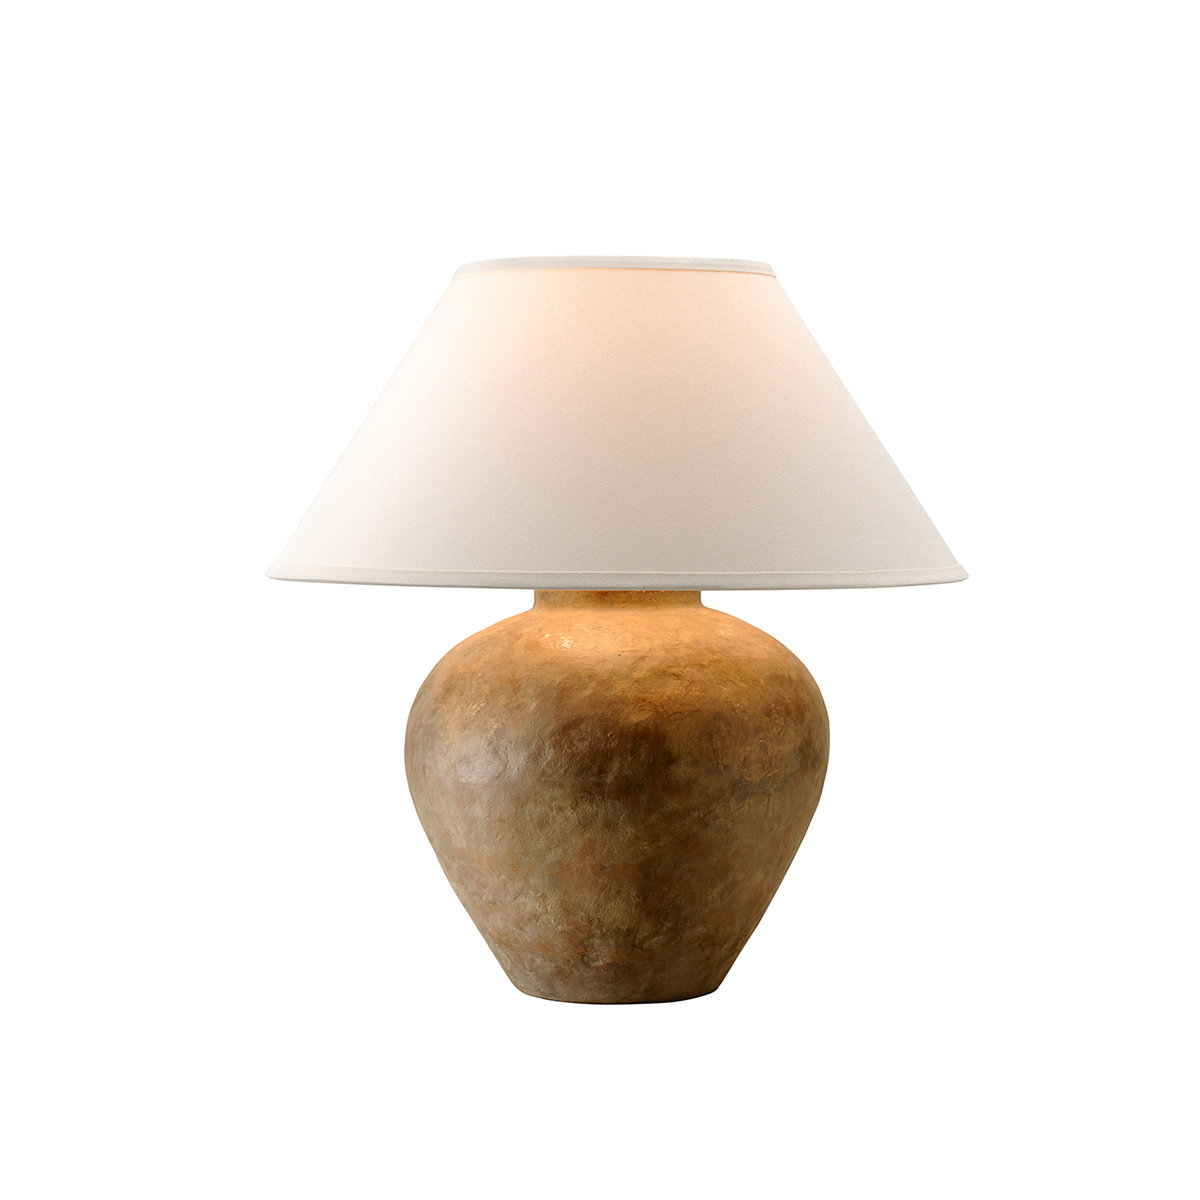 Calabria Stone Table Lamp